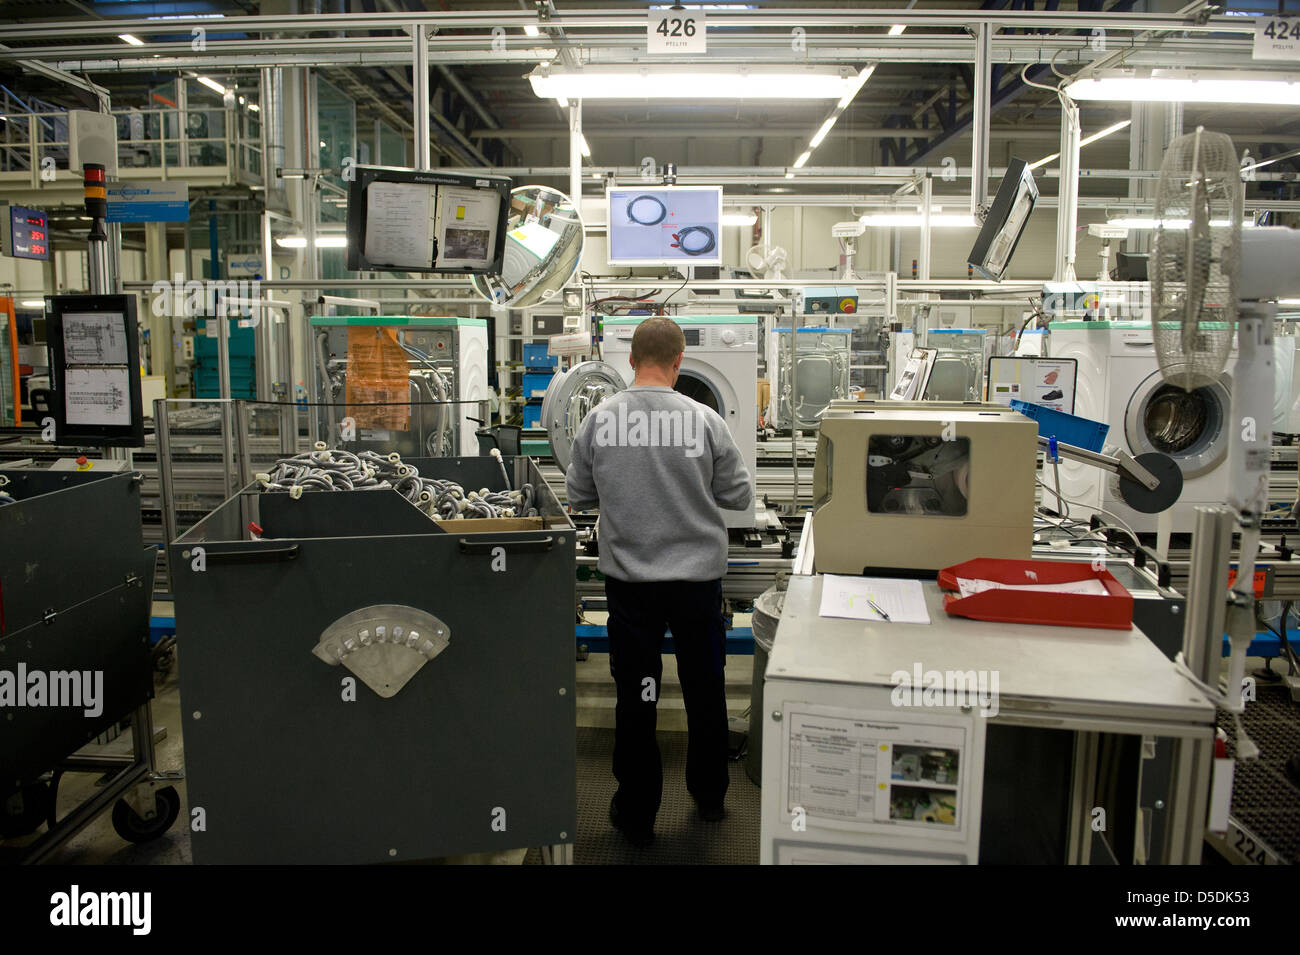 Nauen, of Germany, and employees in the BSH home appliance Nauen GmbH - Stock Image